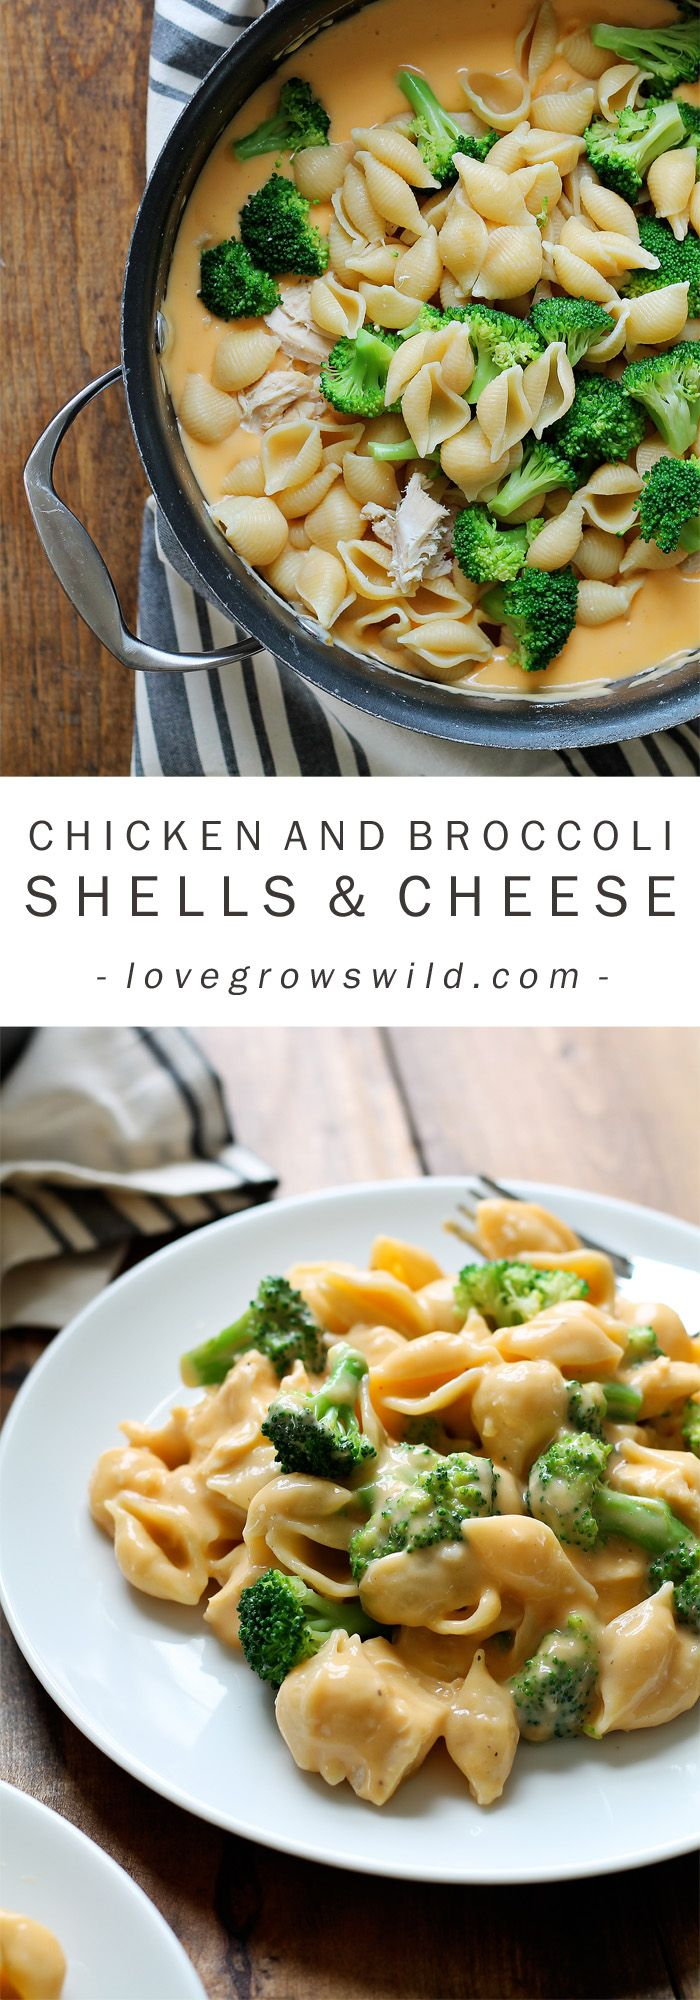 Perfectly creamy homemade shells and cheese made with chicken and broccoli. Everyone loves this easy weeknight meal! Get the recipe at LoveG...